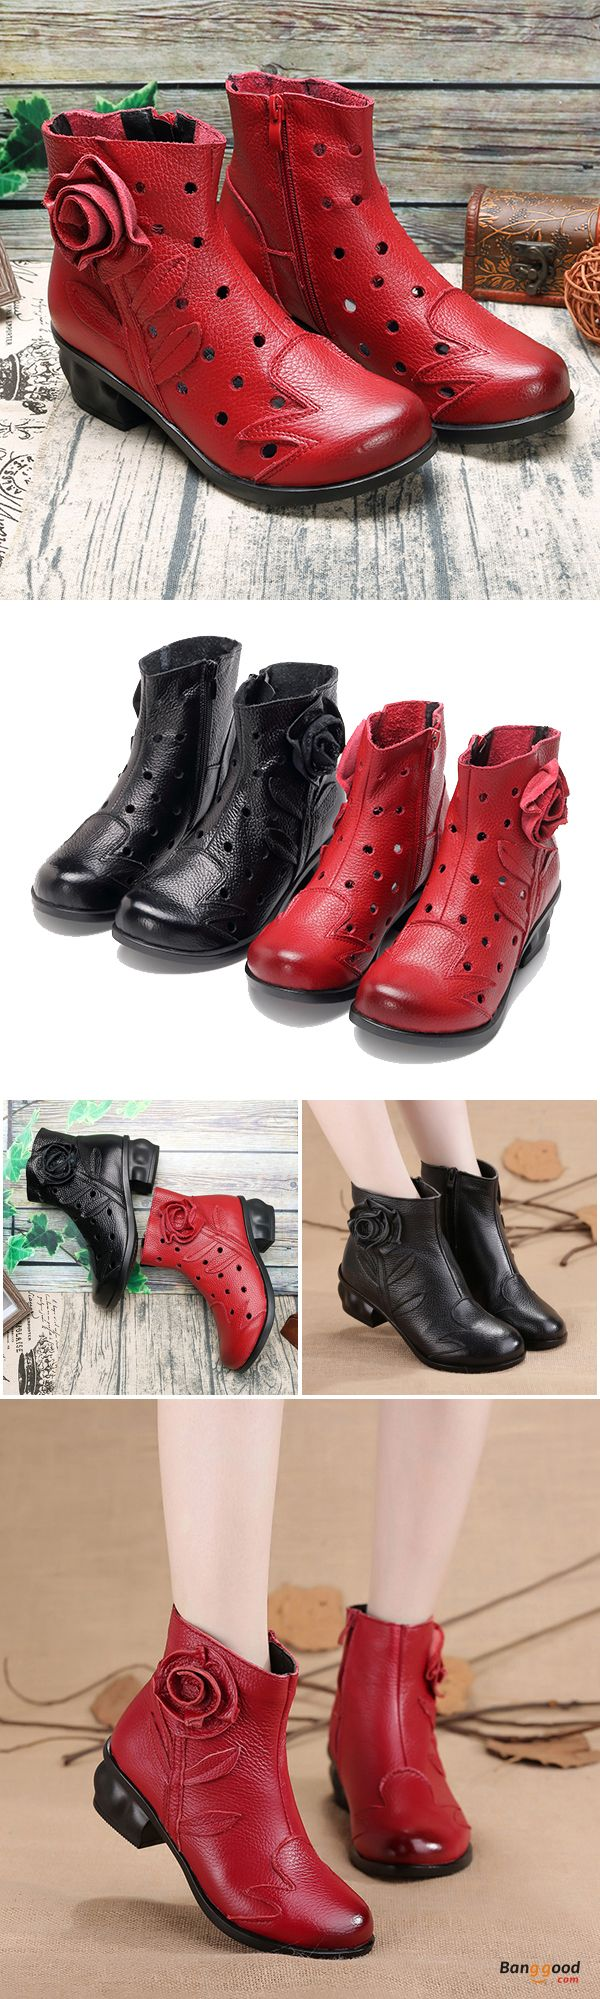 US$45.99 + Free shipping. Size: 5~9. Color: Black, Red. Fall in love with fashion and elegant style! SOCOFY Leather Handmade Flower Hollow Mid Heel Original Vintage Boots.